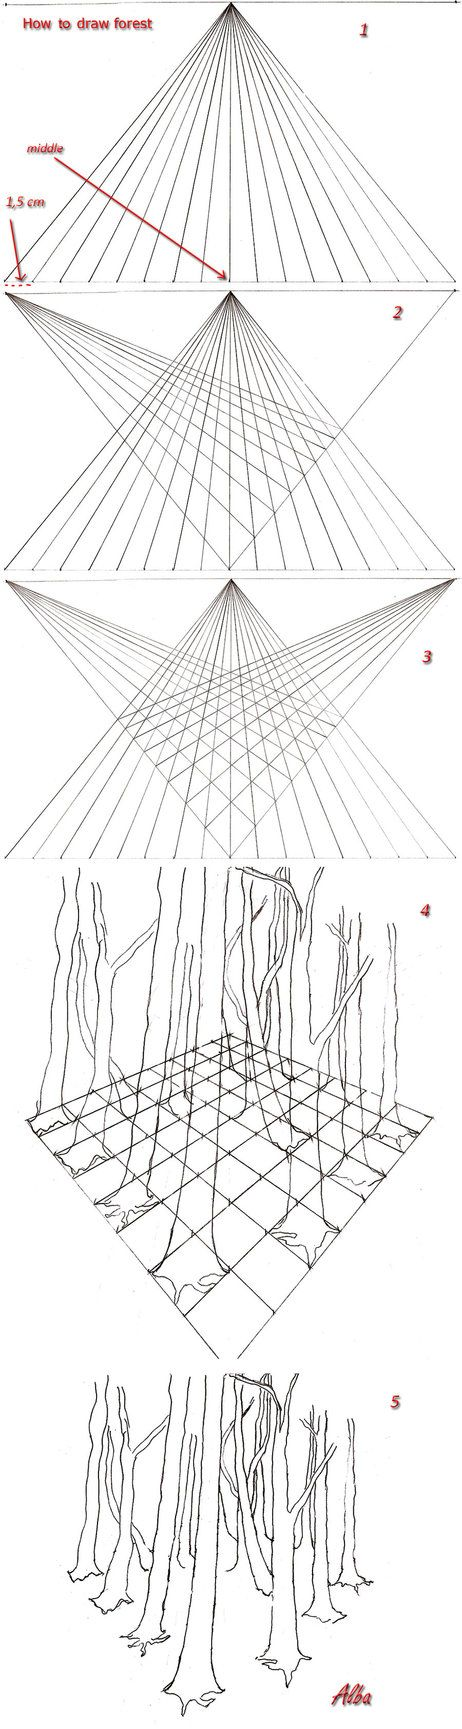 Drawn nature perspective drawing On draw images  how